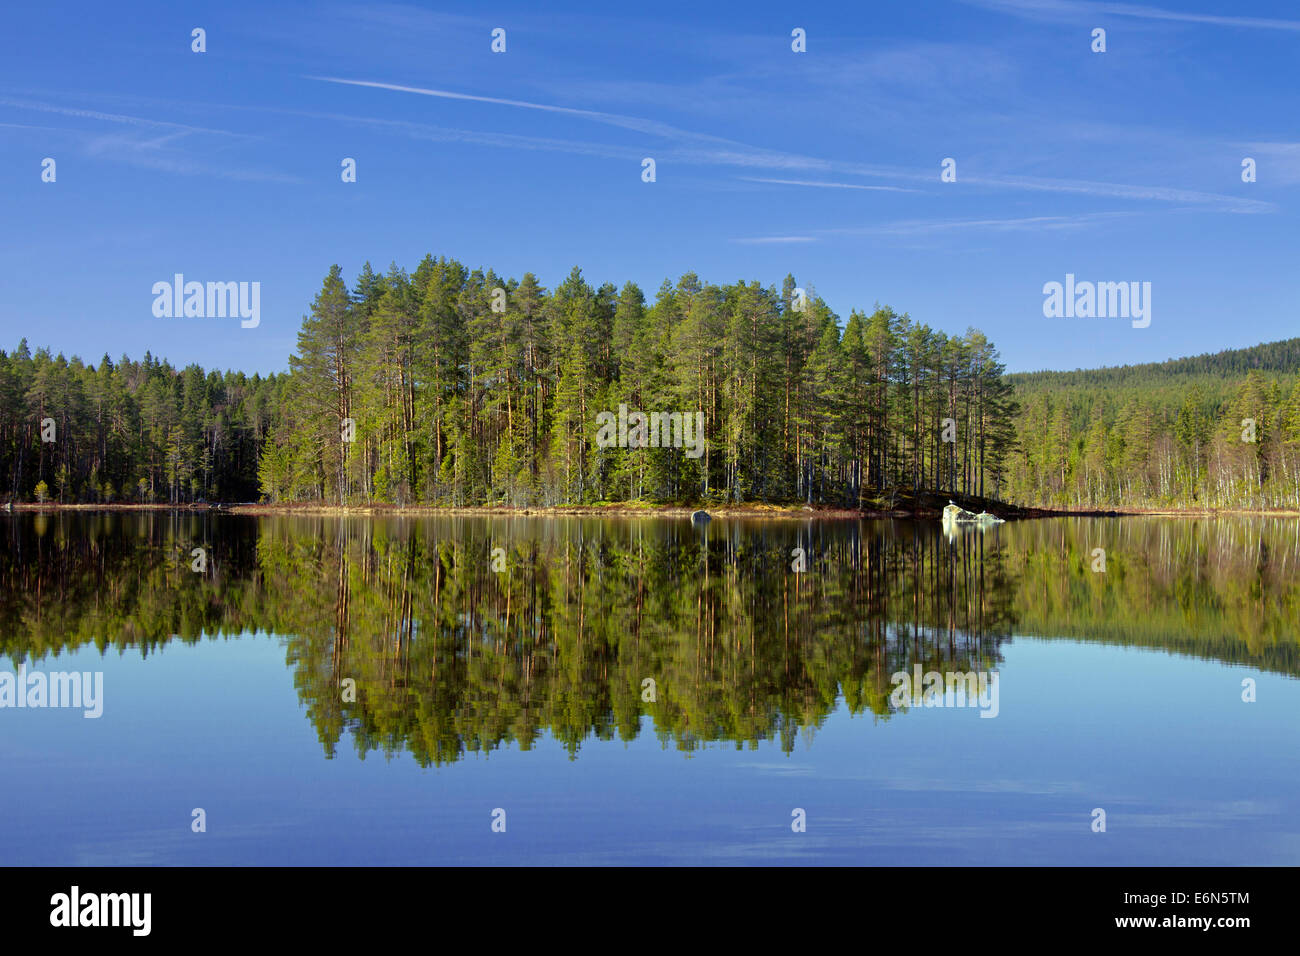 Forest with spruce trees along lake Gryssen in spring, Dalarna, Sweden, Scandinavia - Stock Image